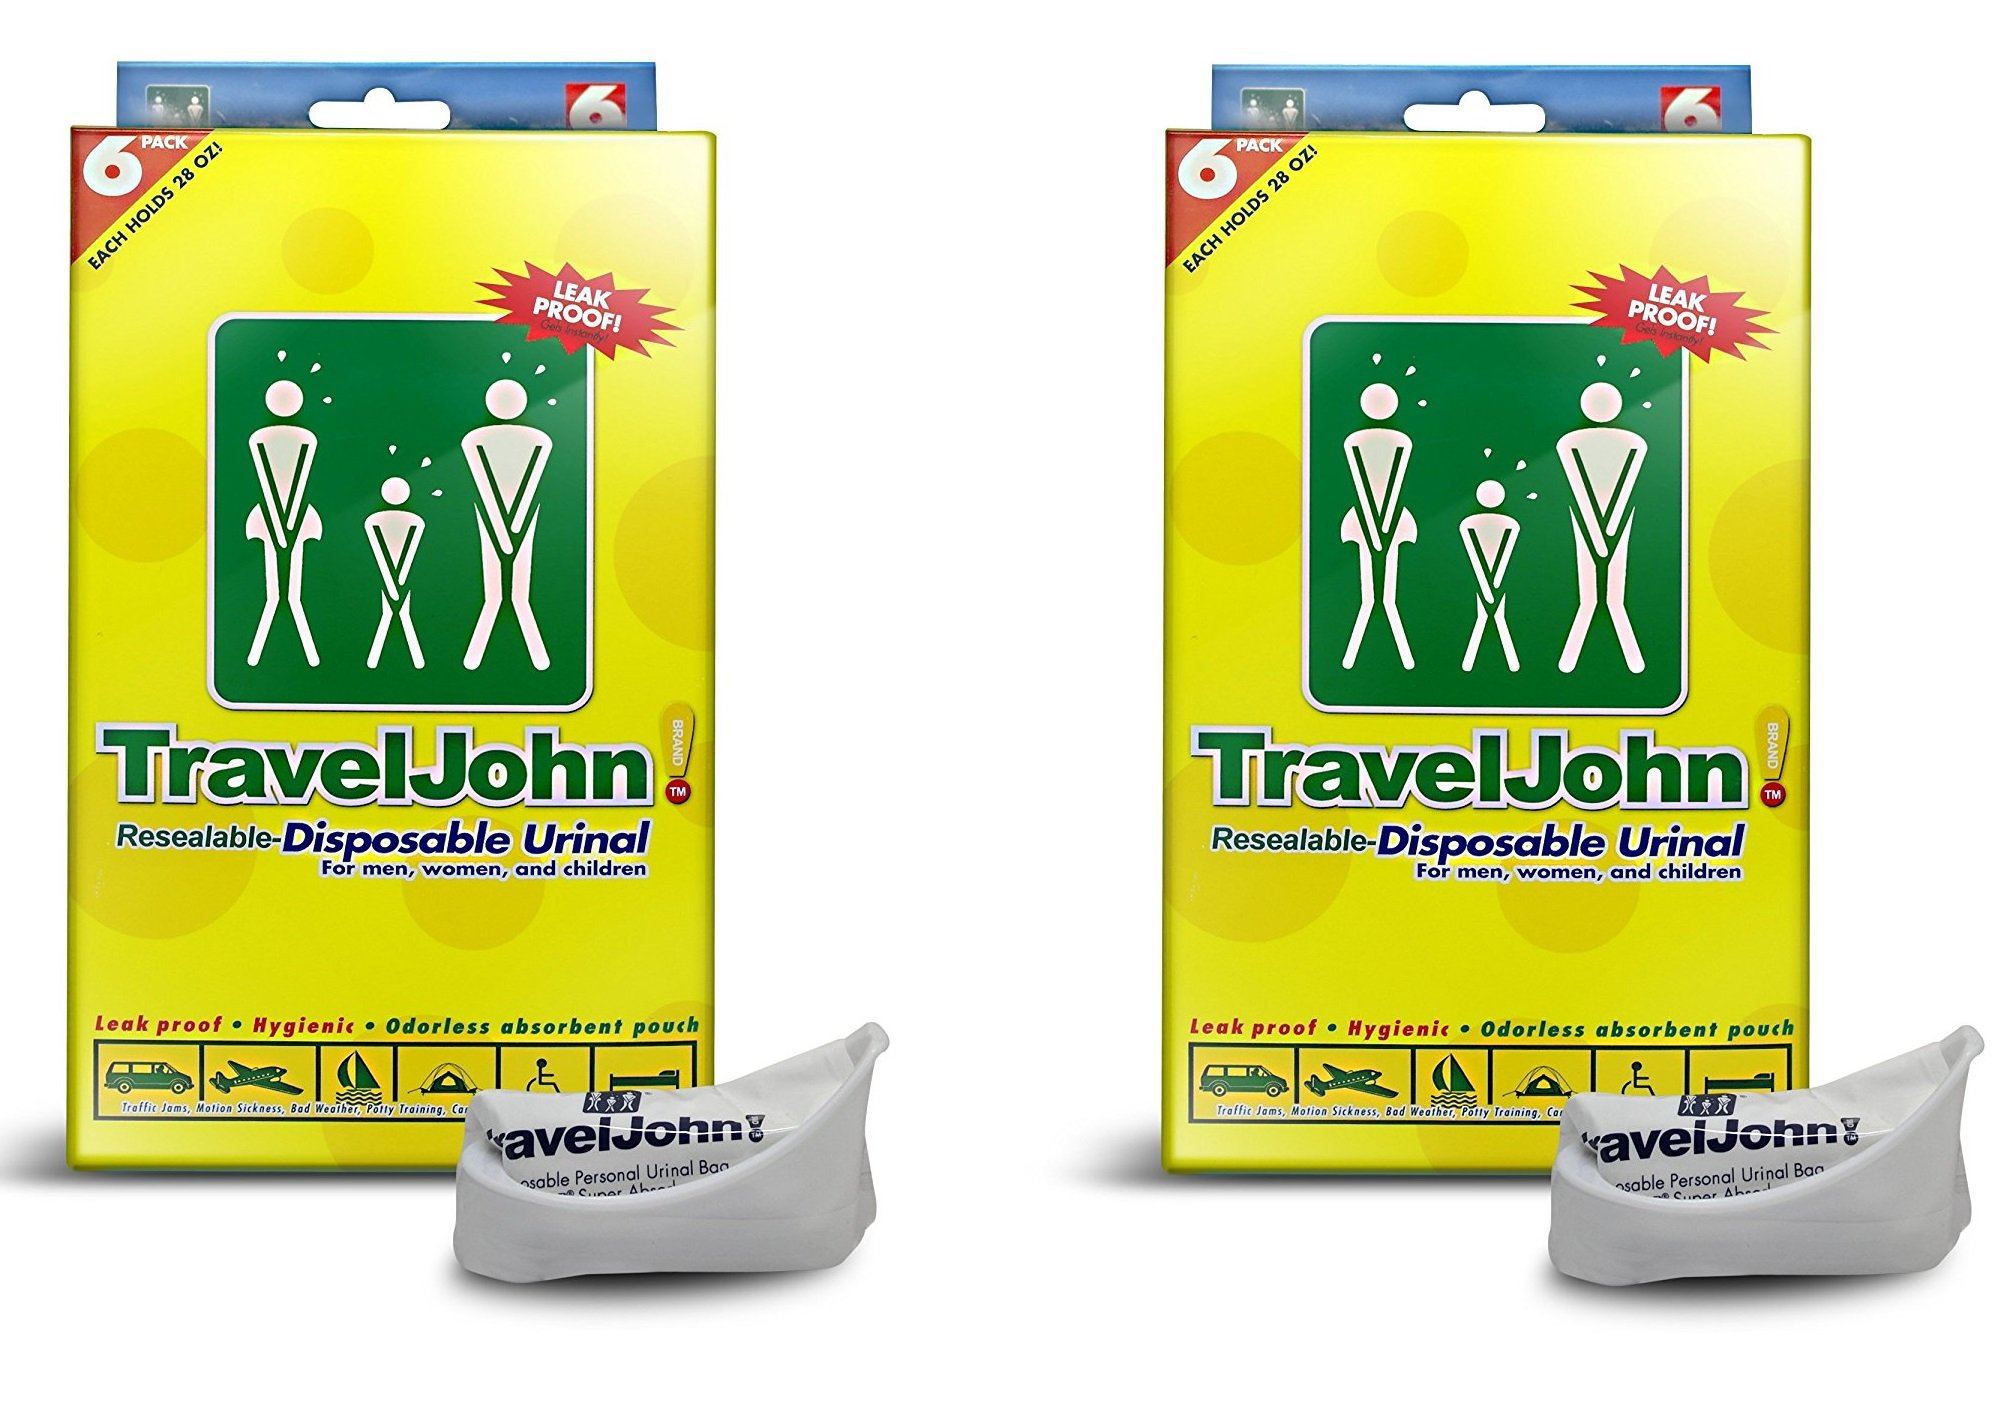 TravelJohn-Disposable Urinal (12 Disposable Bags)